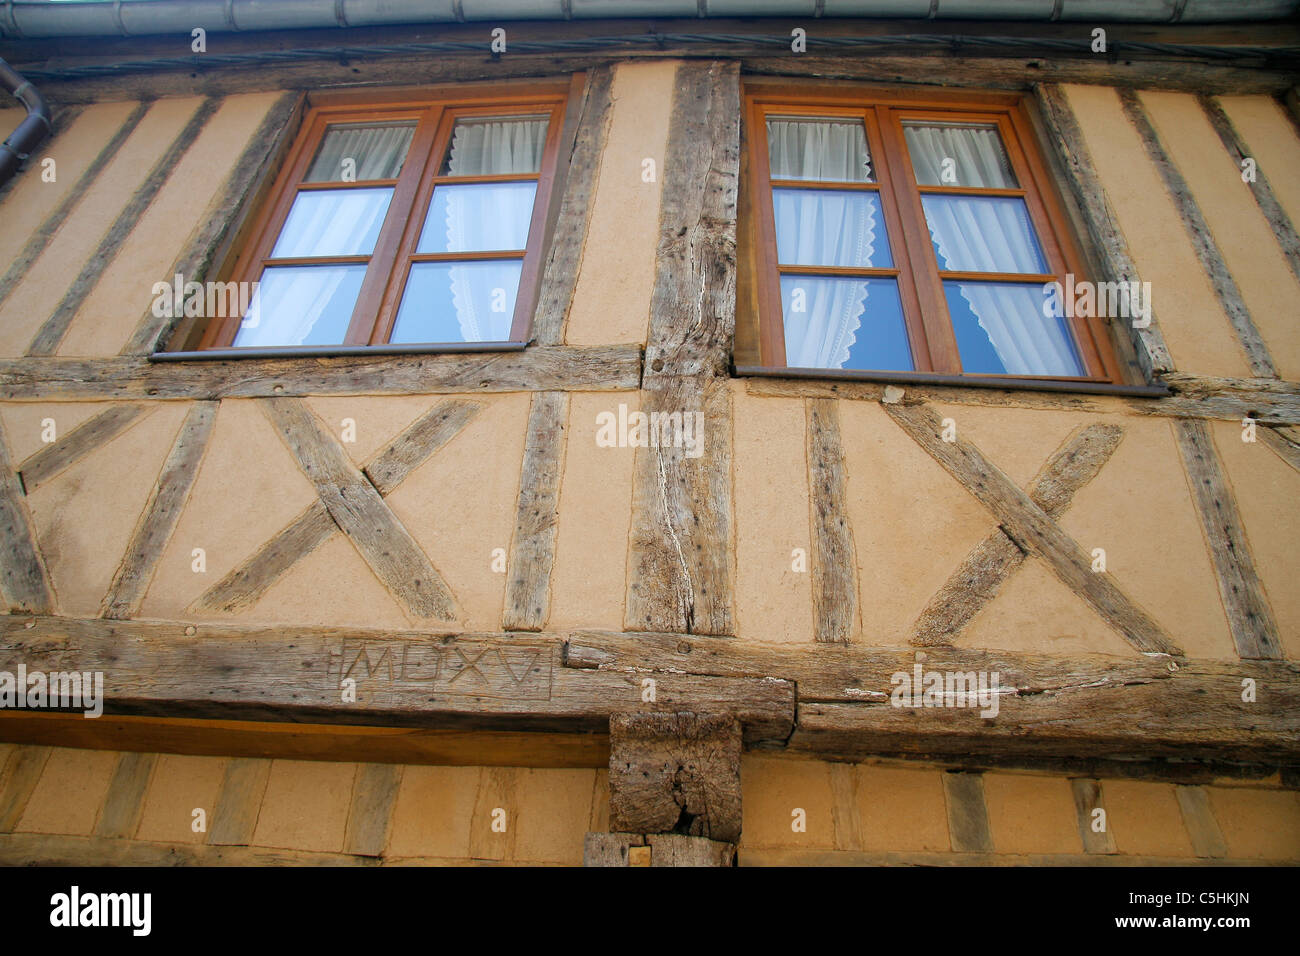 Wood-framed house that has been a restoration (Normandy, France). - Stock Image